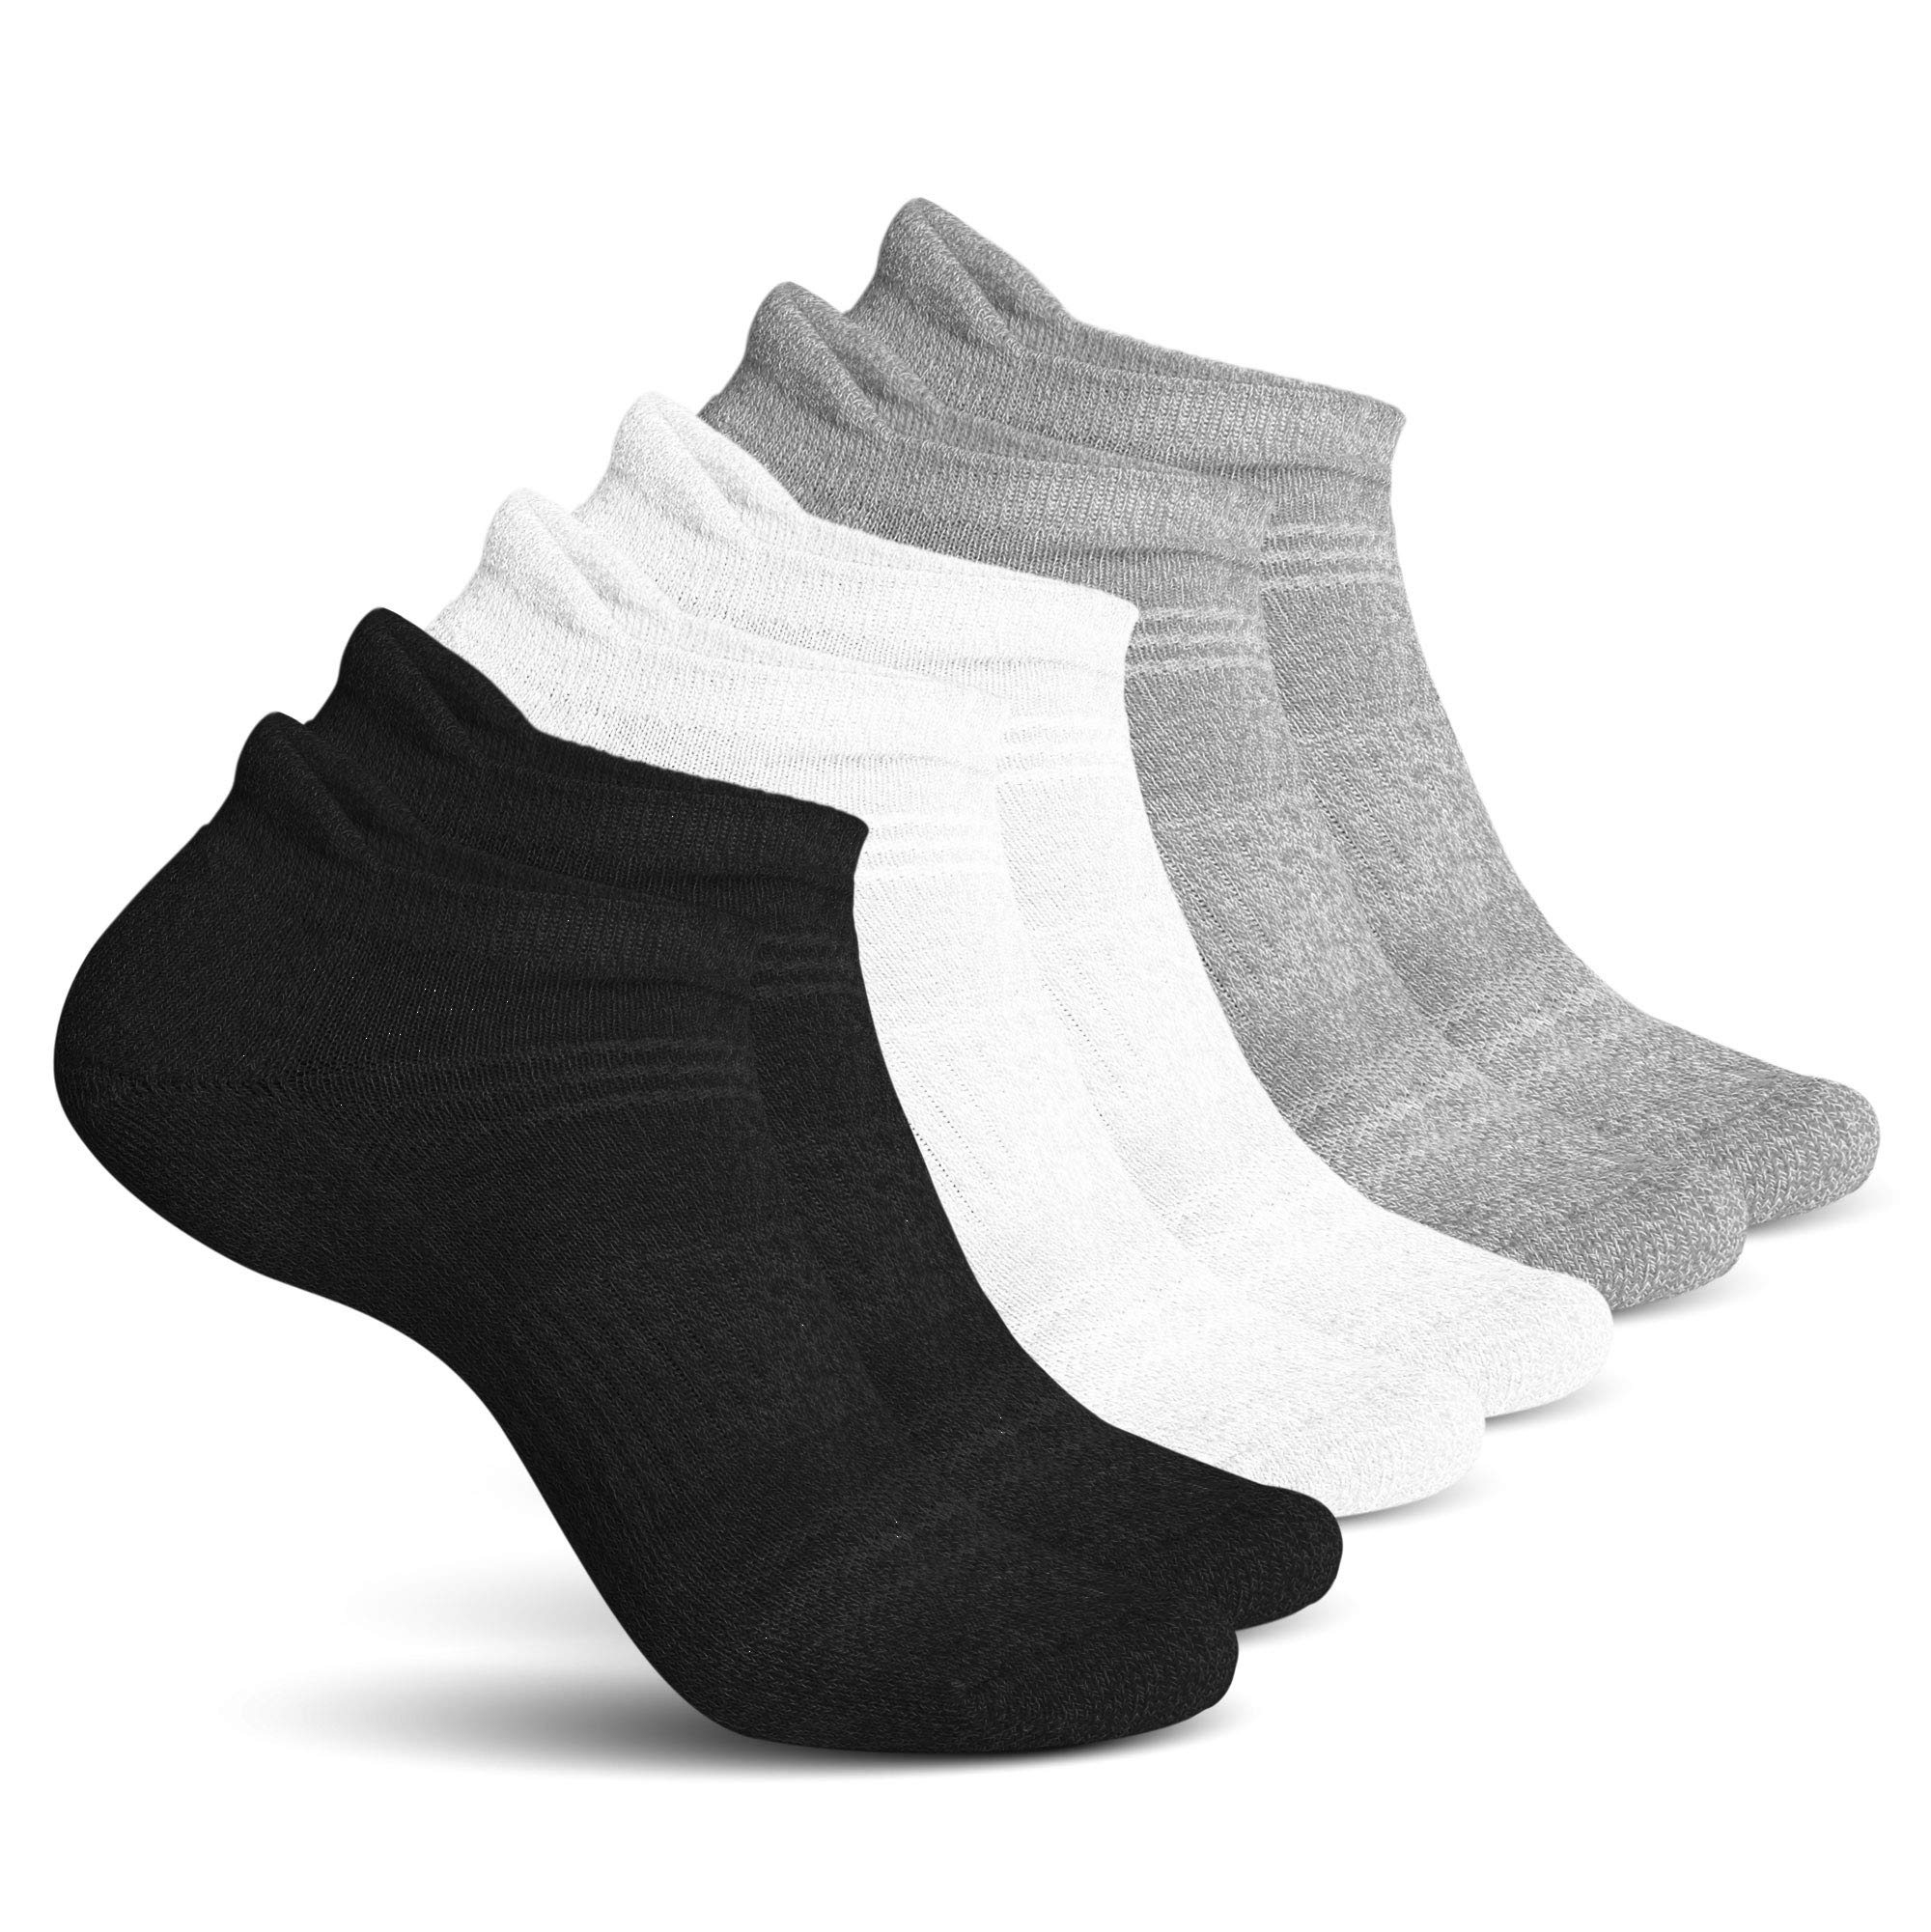 Athletic Socks for Women - Ladies Ankle Socks - No Show Low Cut Cushioned Performance Sports Tab Socks with Arch Support for Running, Hiking, Workout and More - Soft & Comfortable Fit - 6 Pack by Pembrook